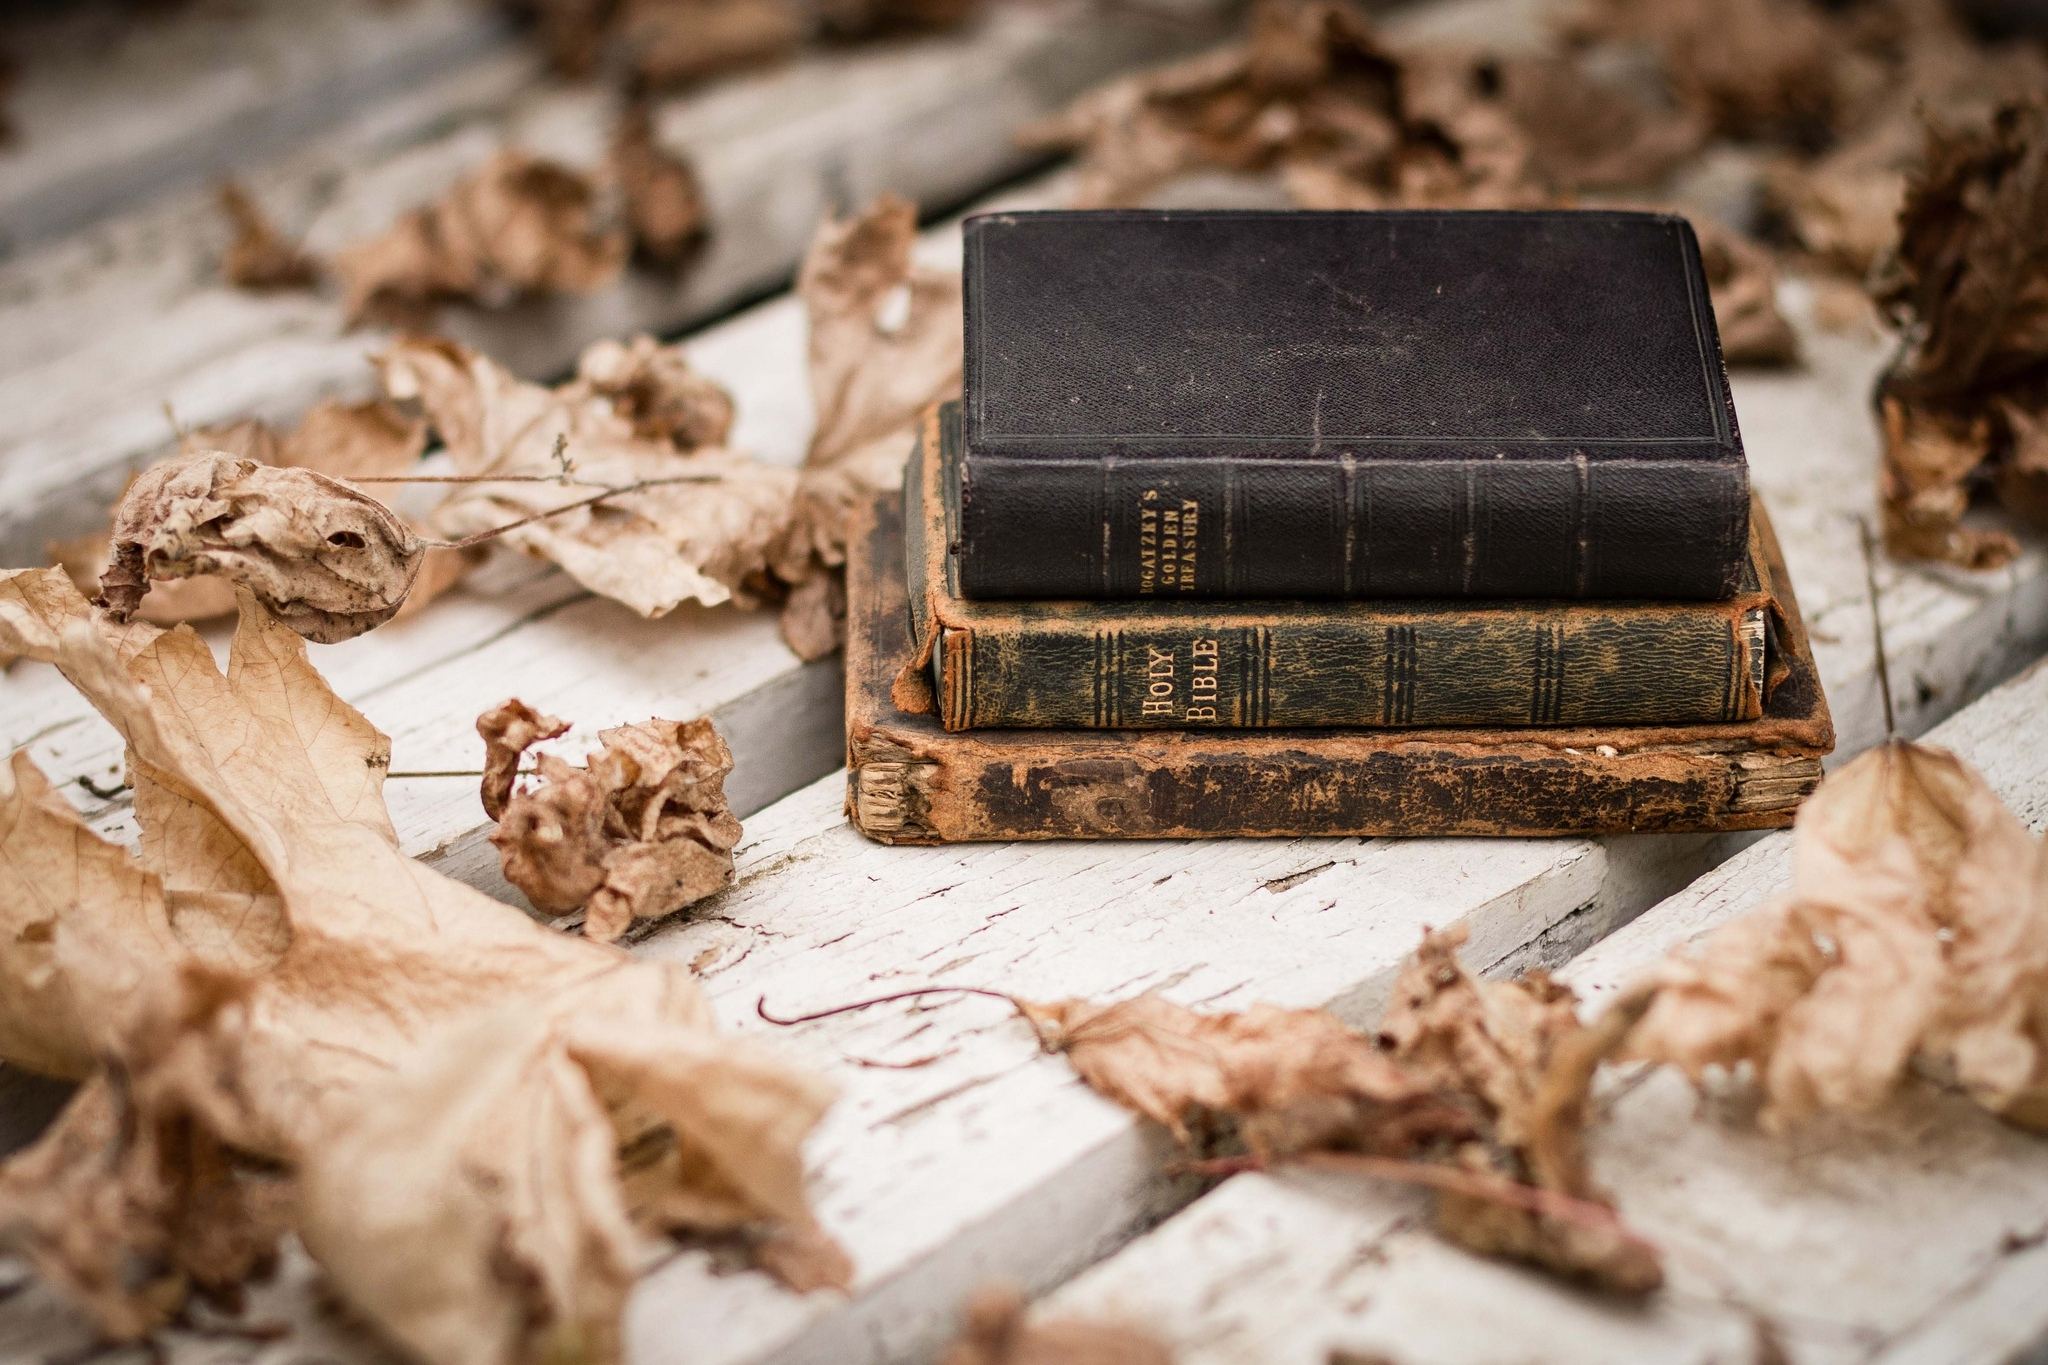 Book Hd Wallpaper Background Image 2048x1365 Id